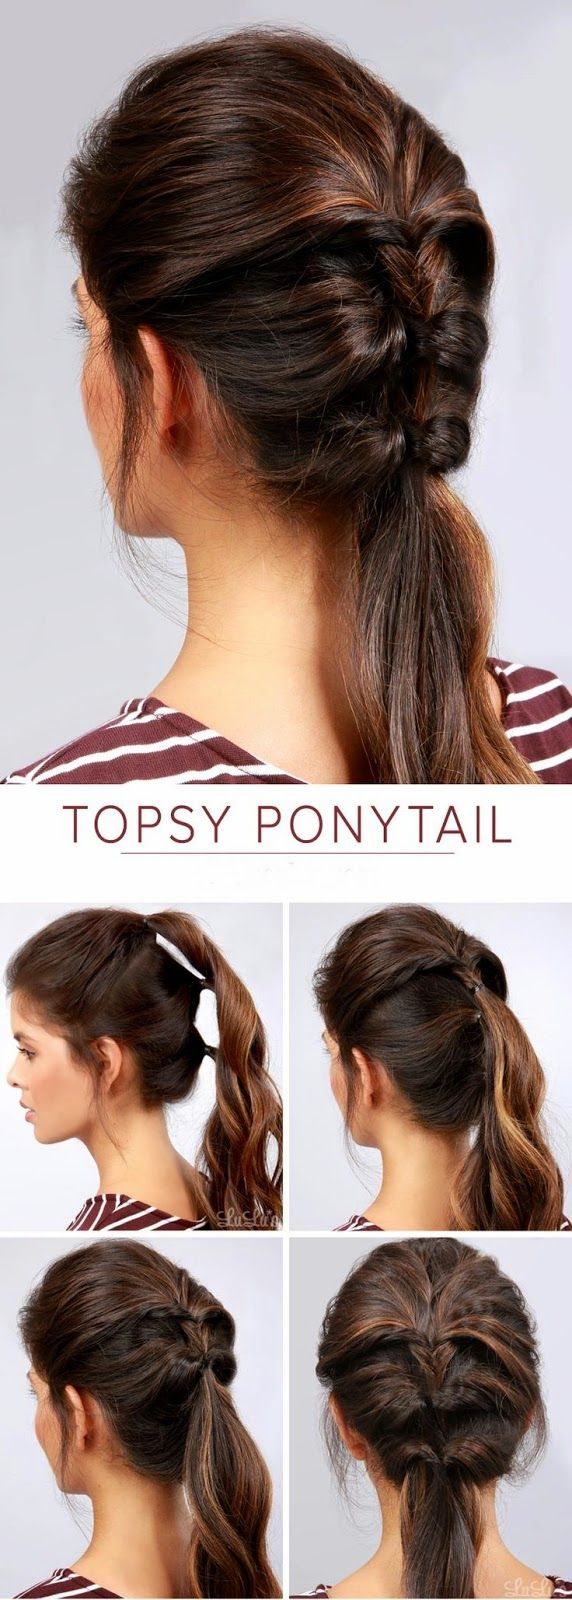 Surprising 1000 Ideas About Easy Ponytail Hairstyles On Pinterest Ponytail Short Hairstyles For Black Women Fulllsitofus